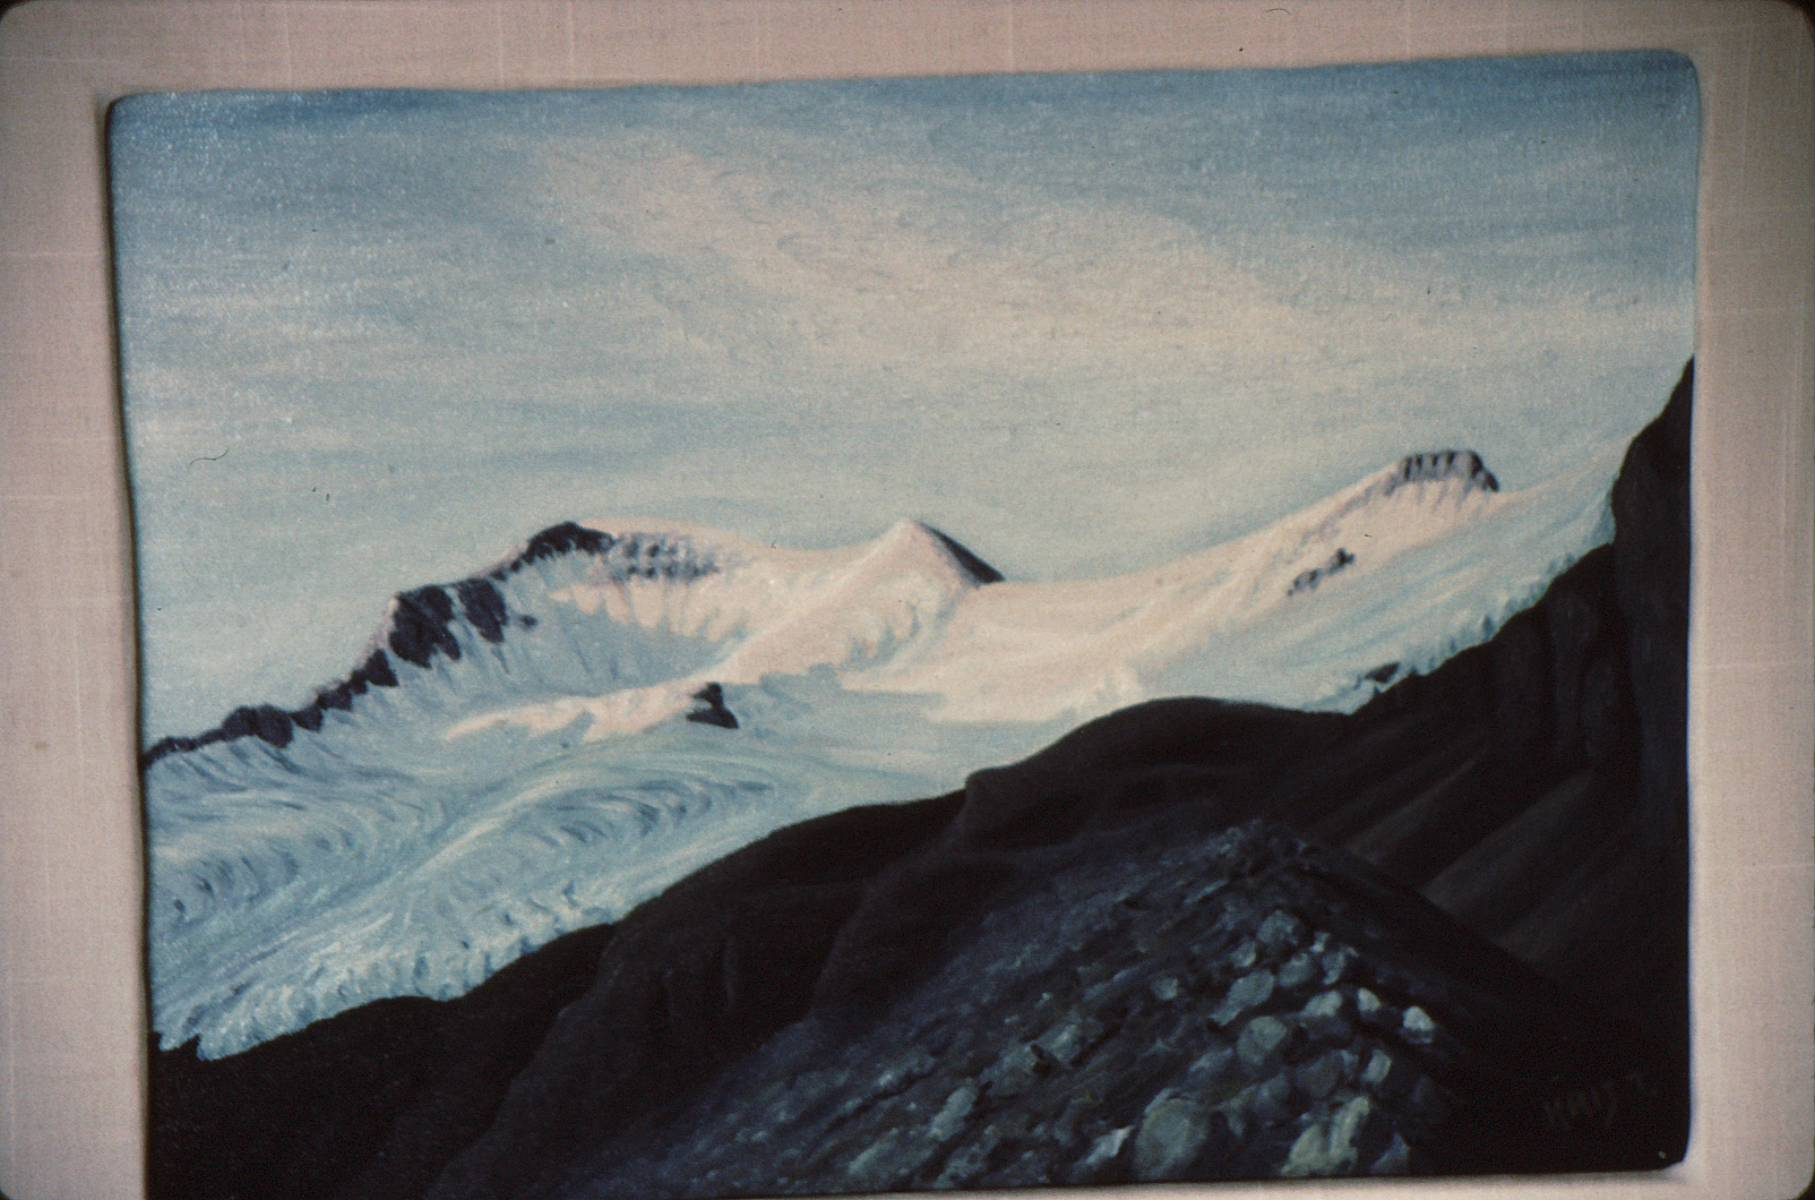 KJT Paintings Summer 93-34 Athabasca Alpenglow